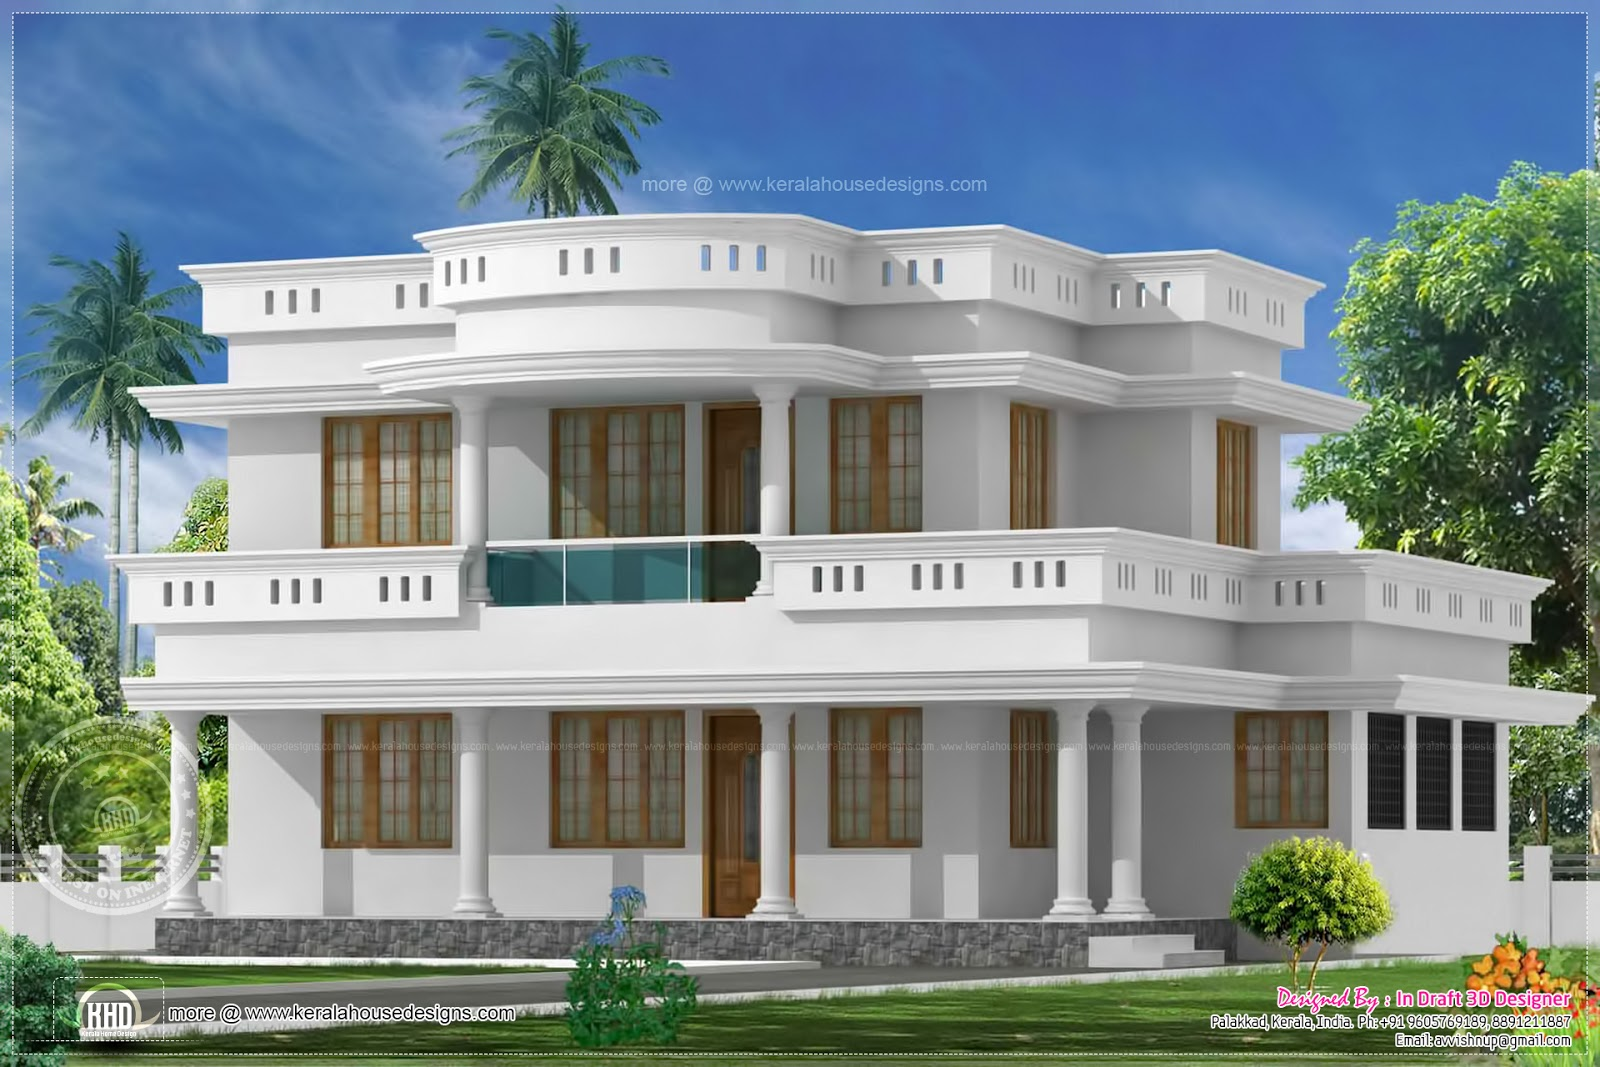 2192 Square Feet Villa Exterior Design Kerala Home Design And Floor Plans